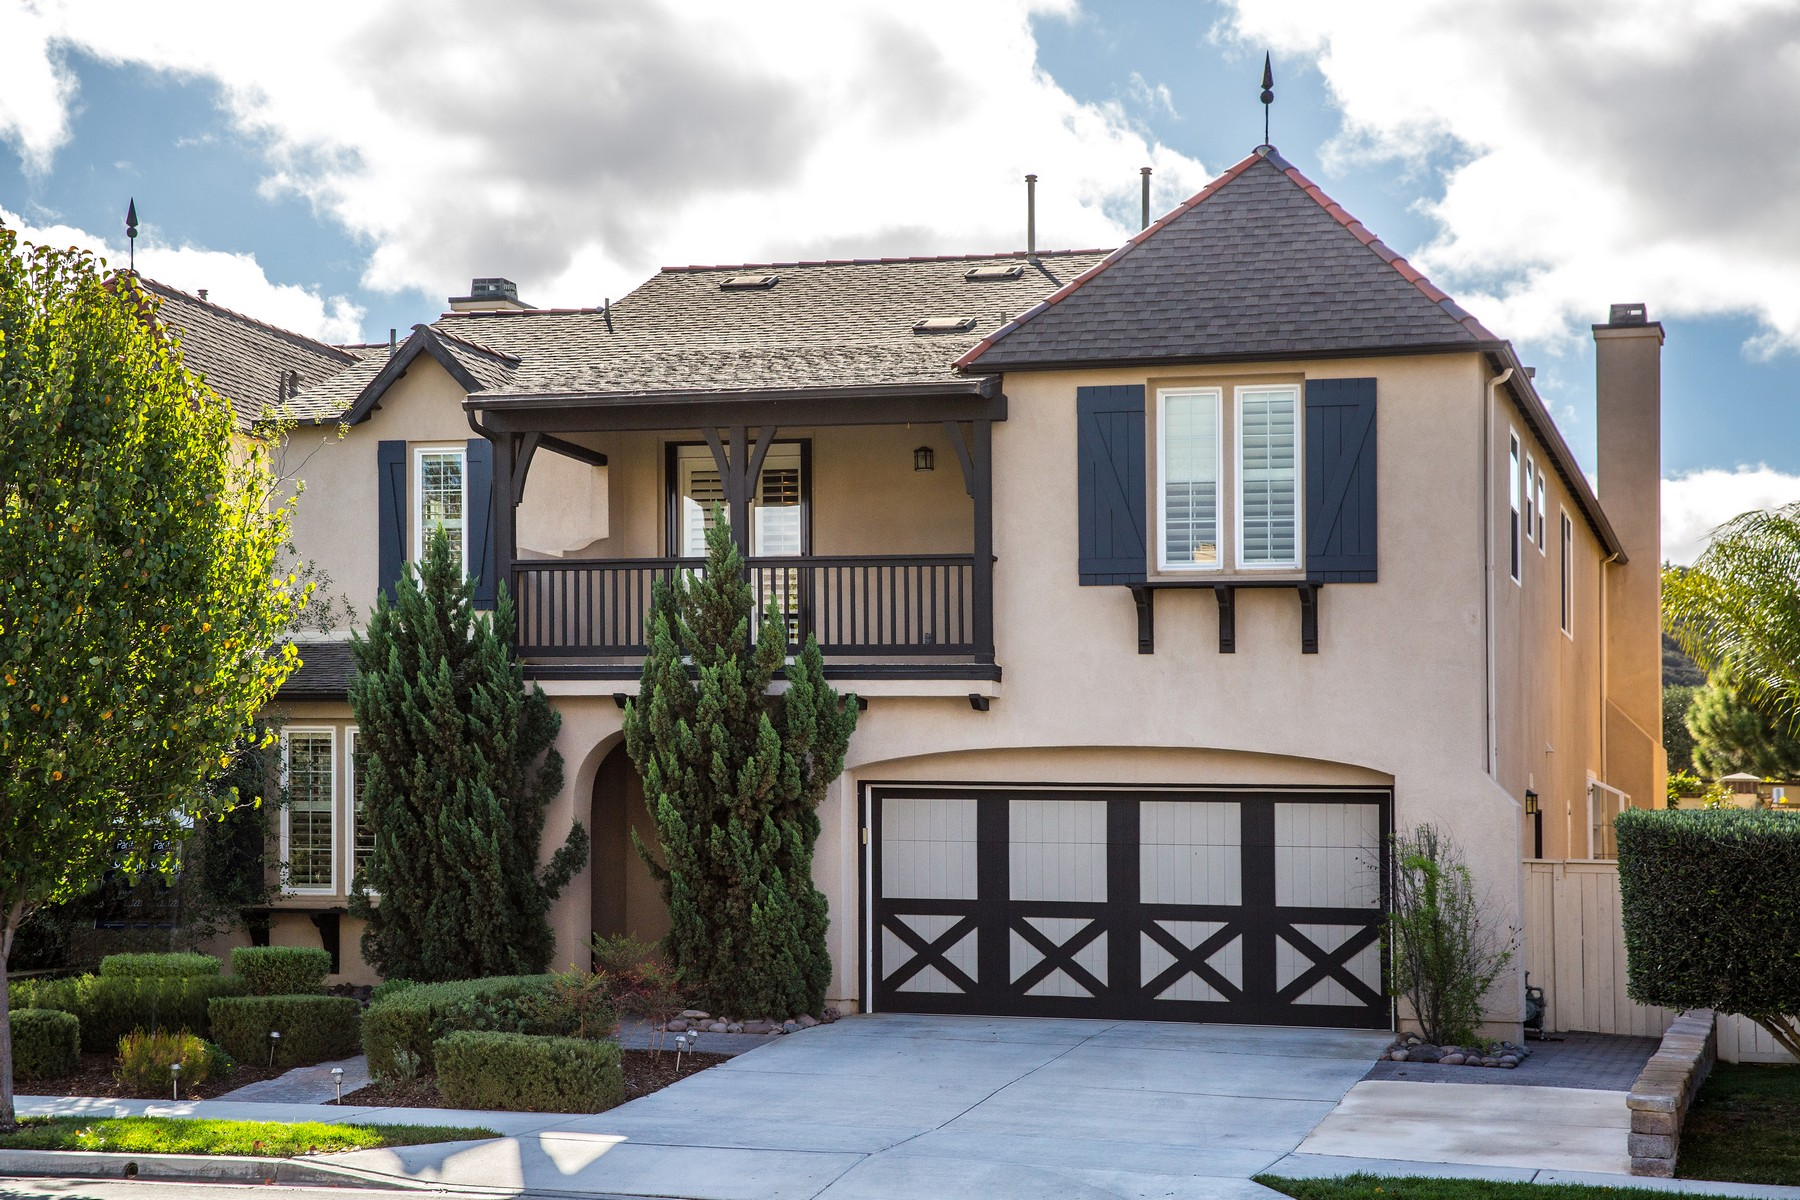 Single Family Home for Sale at 13782 Rosecroft Way San Diego, California 92130 United States